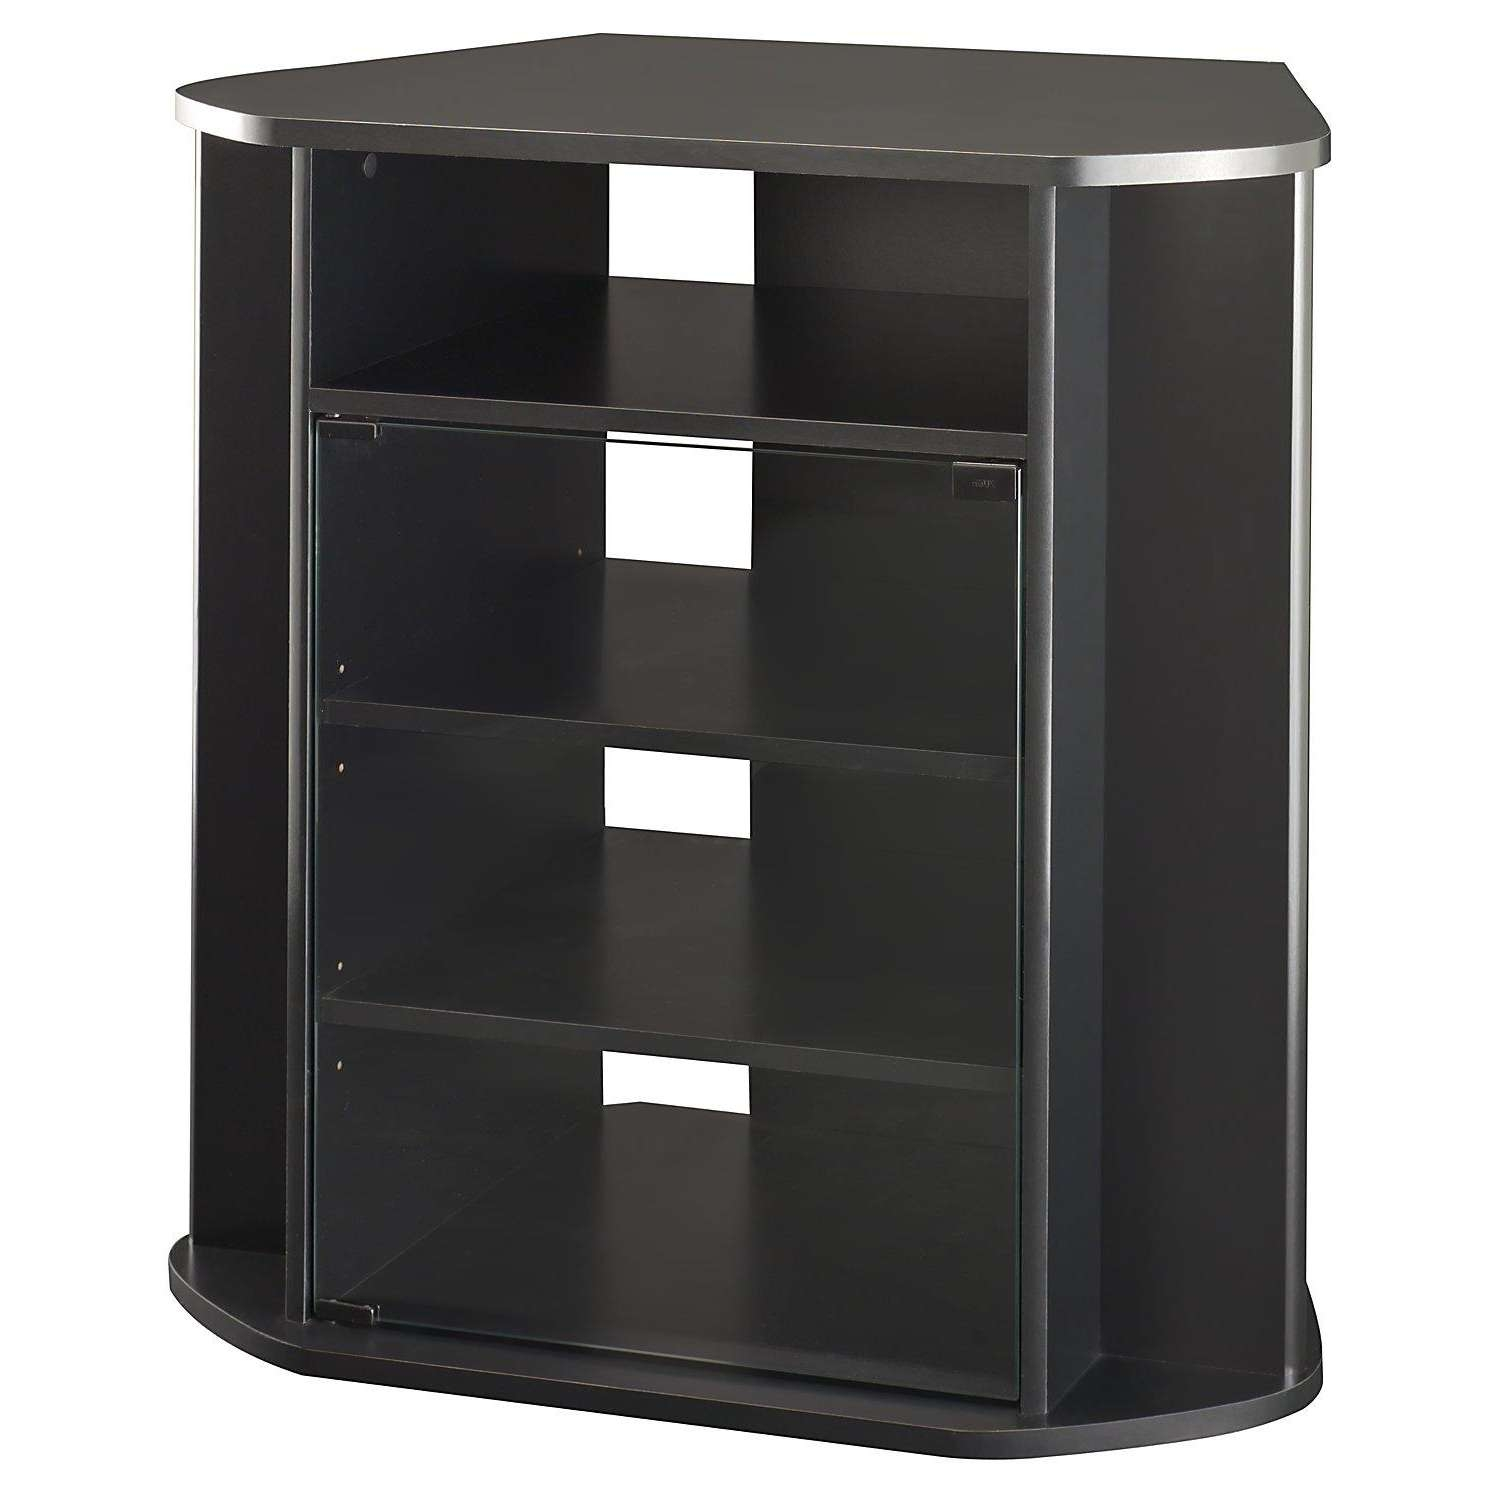 Prodigious Tv Cabinet Ikea A Media Cabinet Media Cabinets With Inside Black Tv Cabinets With Doors (View 12 of 20)